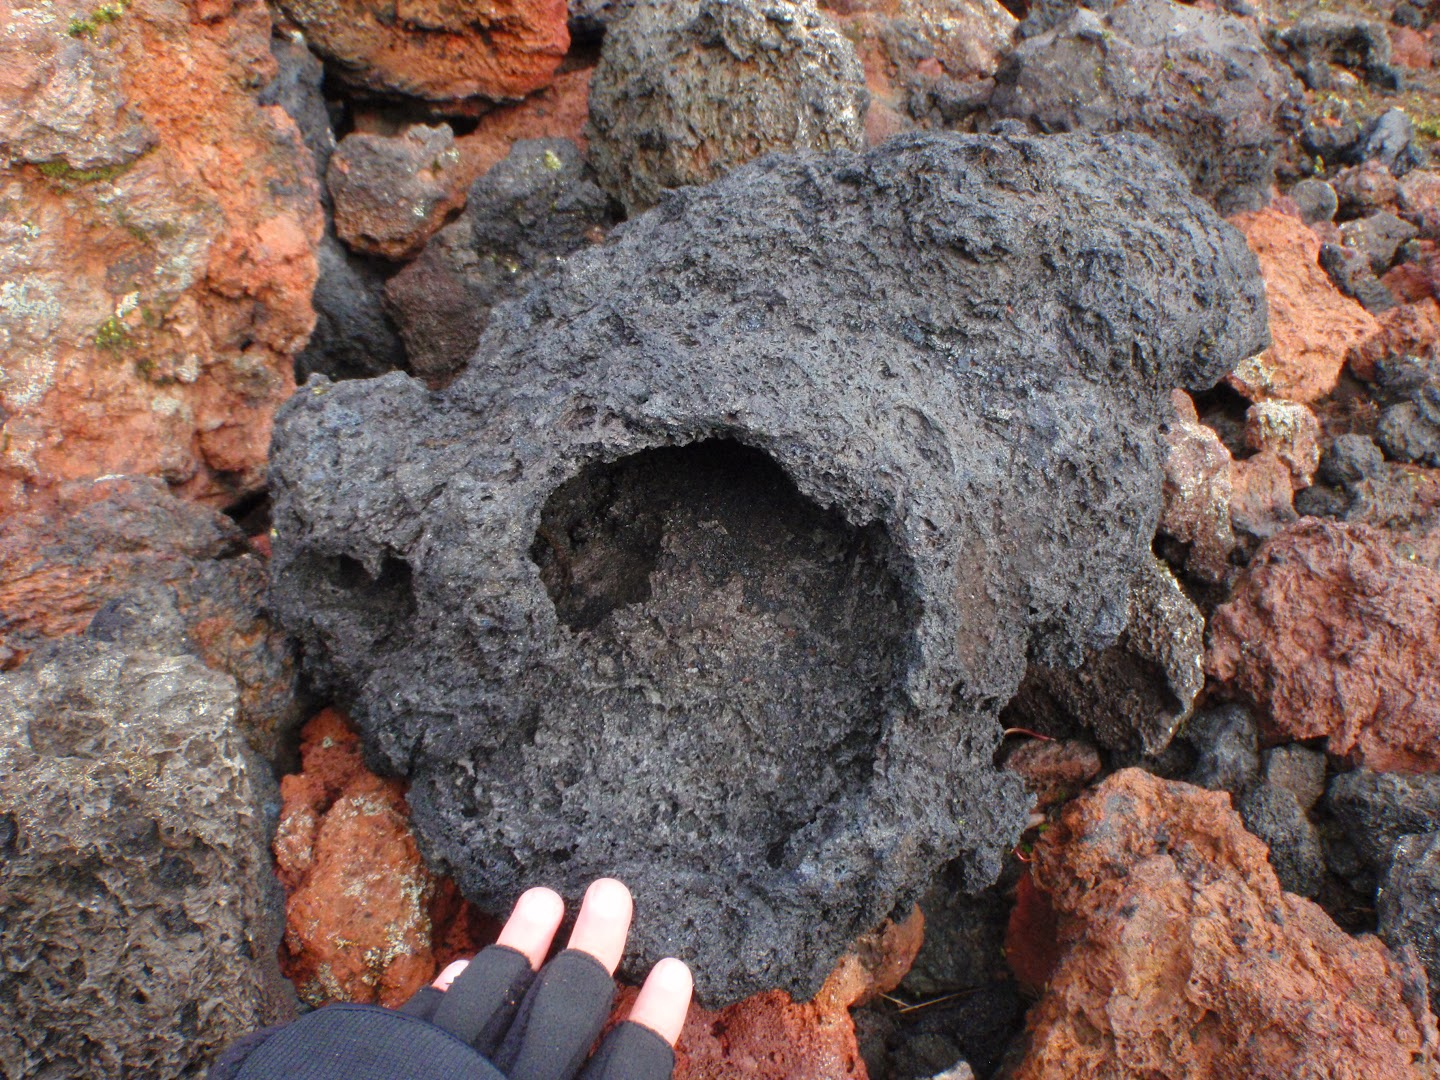 Large cavity in scoria boulder collected from the bottom of a scoria cone. Undetermined locality near Landmannalaugar, southern Iceland.